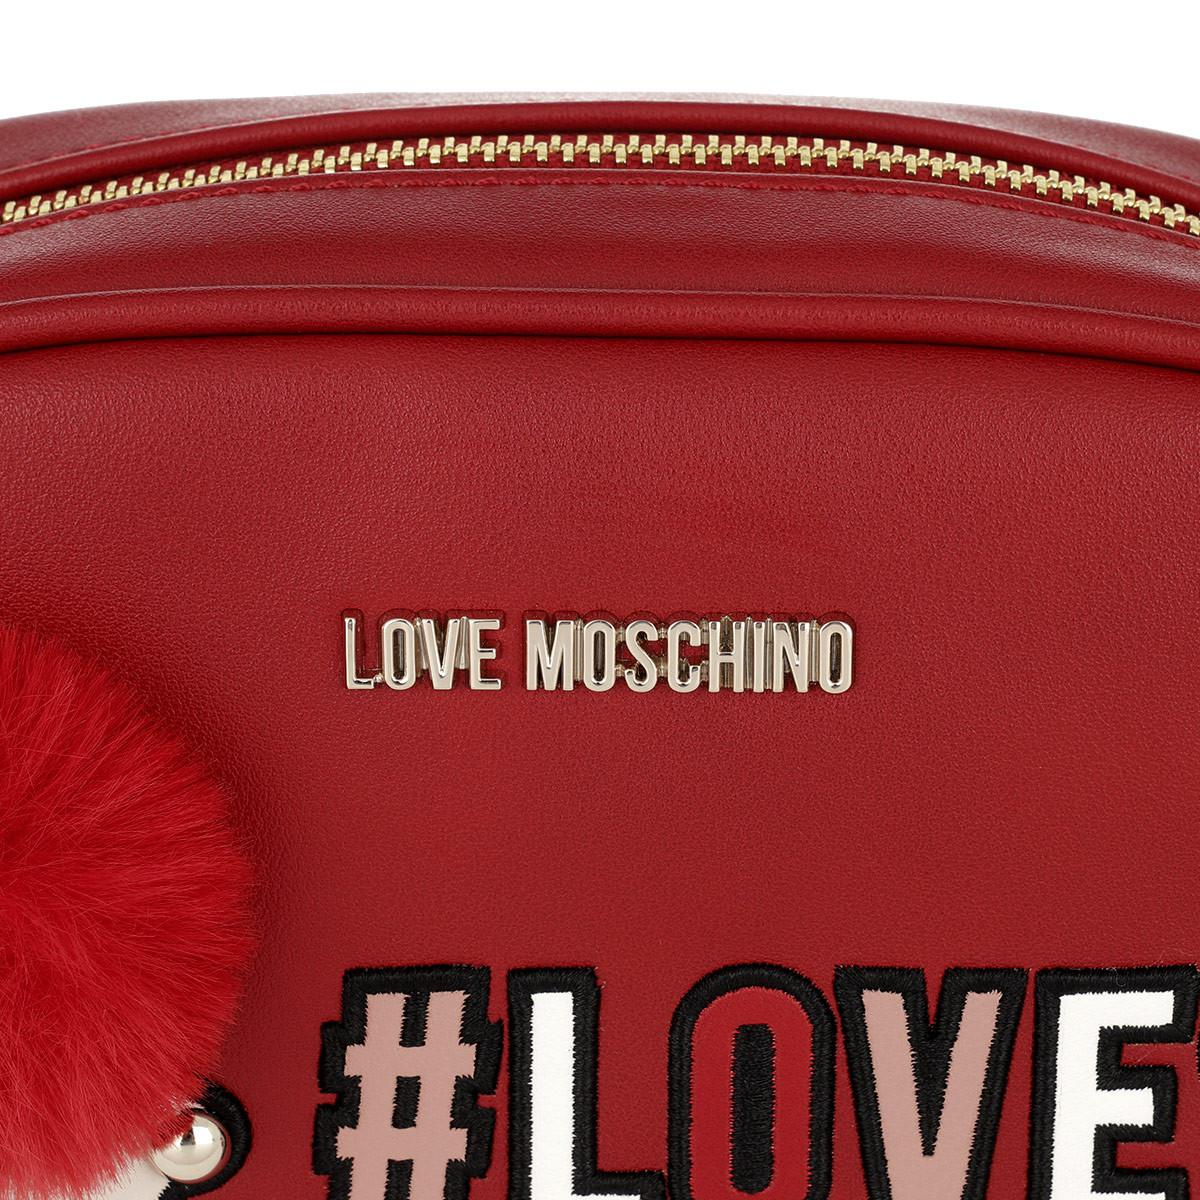 Love Moschino Synthetic Love Crossbody Bag Rosso in Red